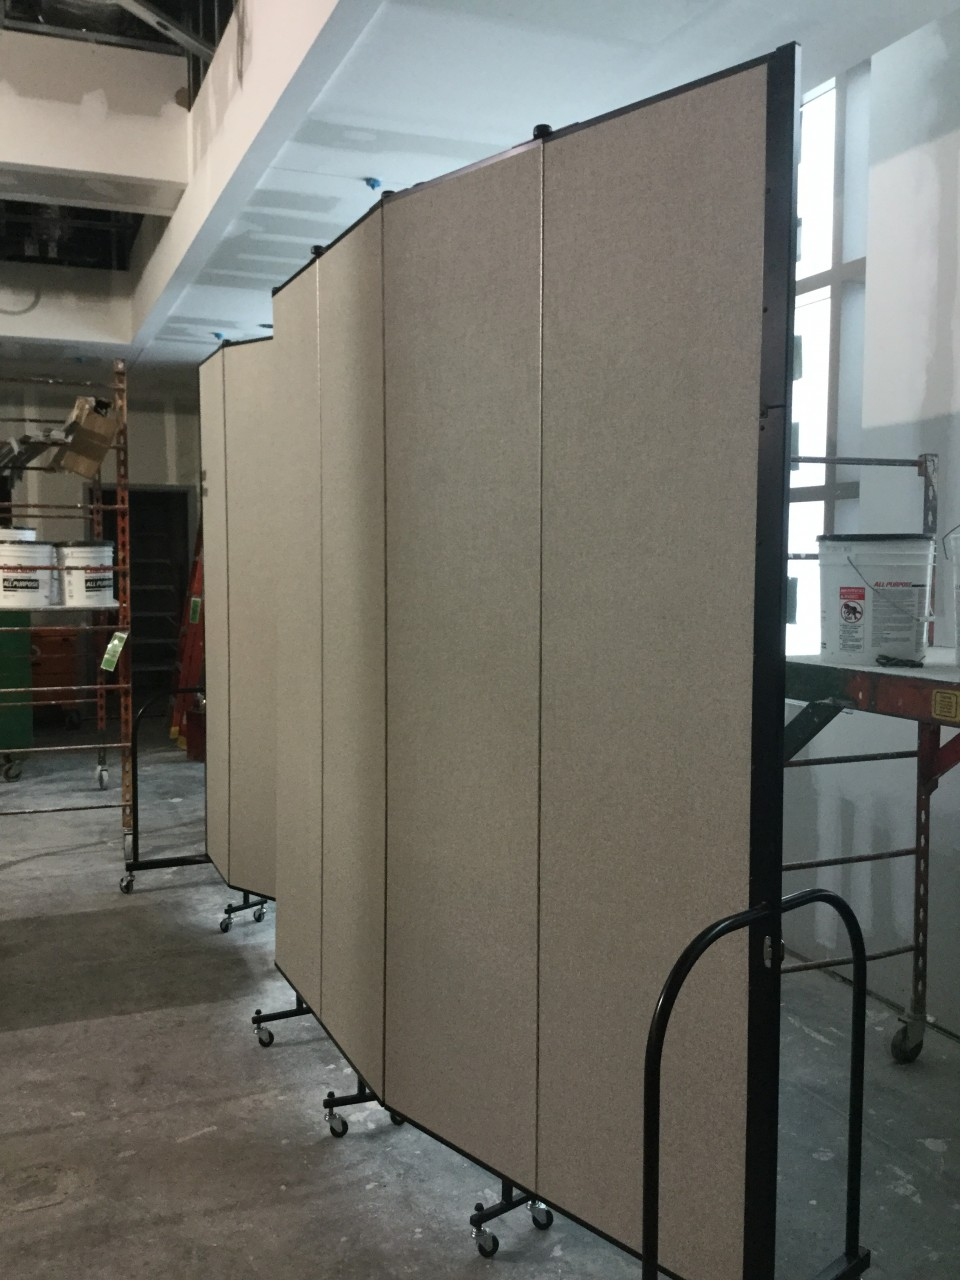 Room divider in construction area